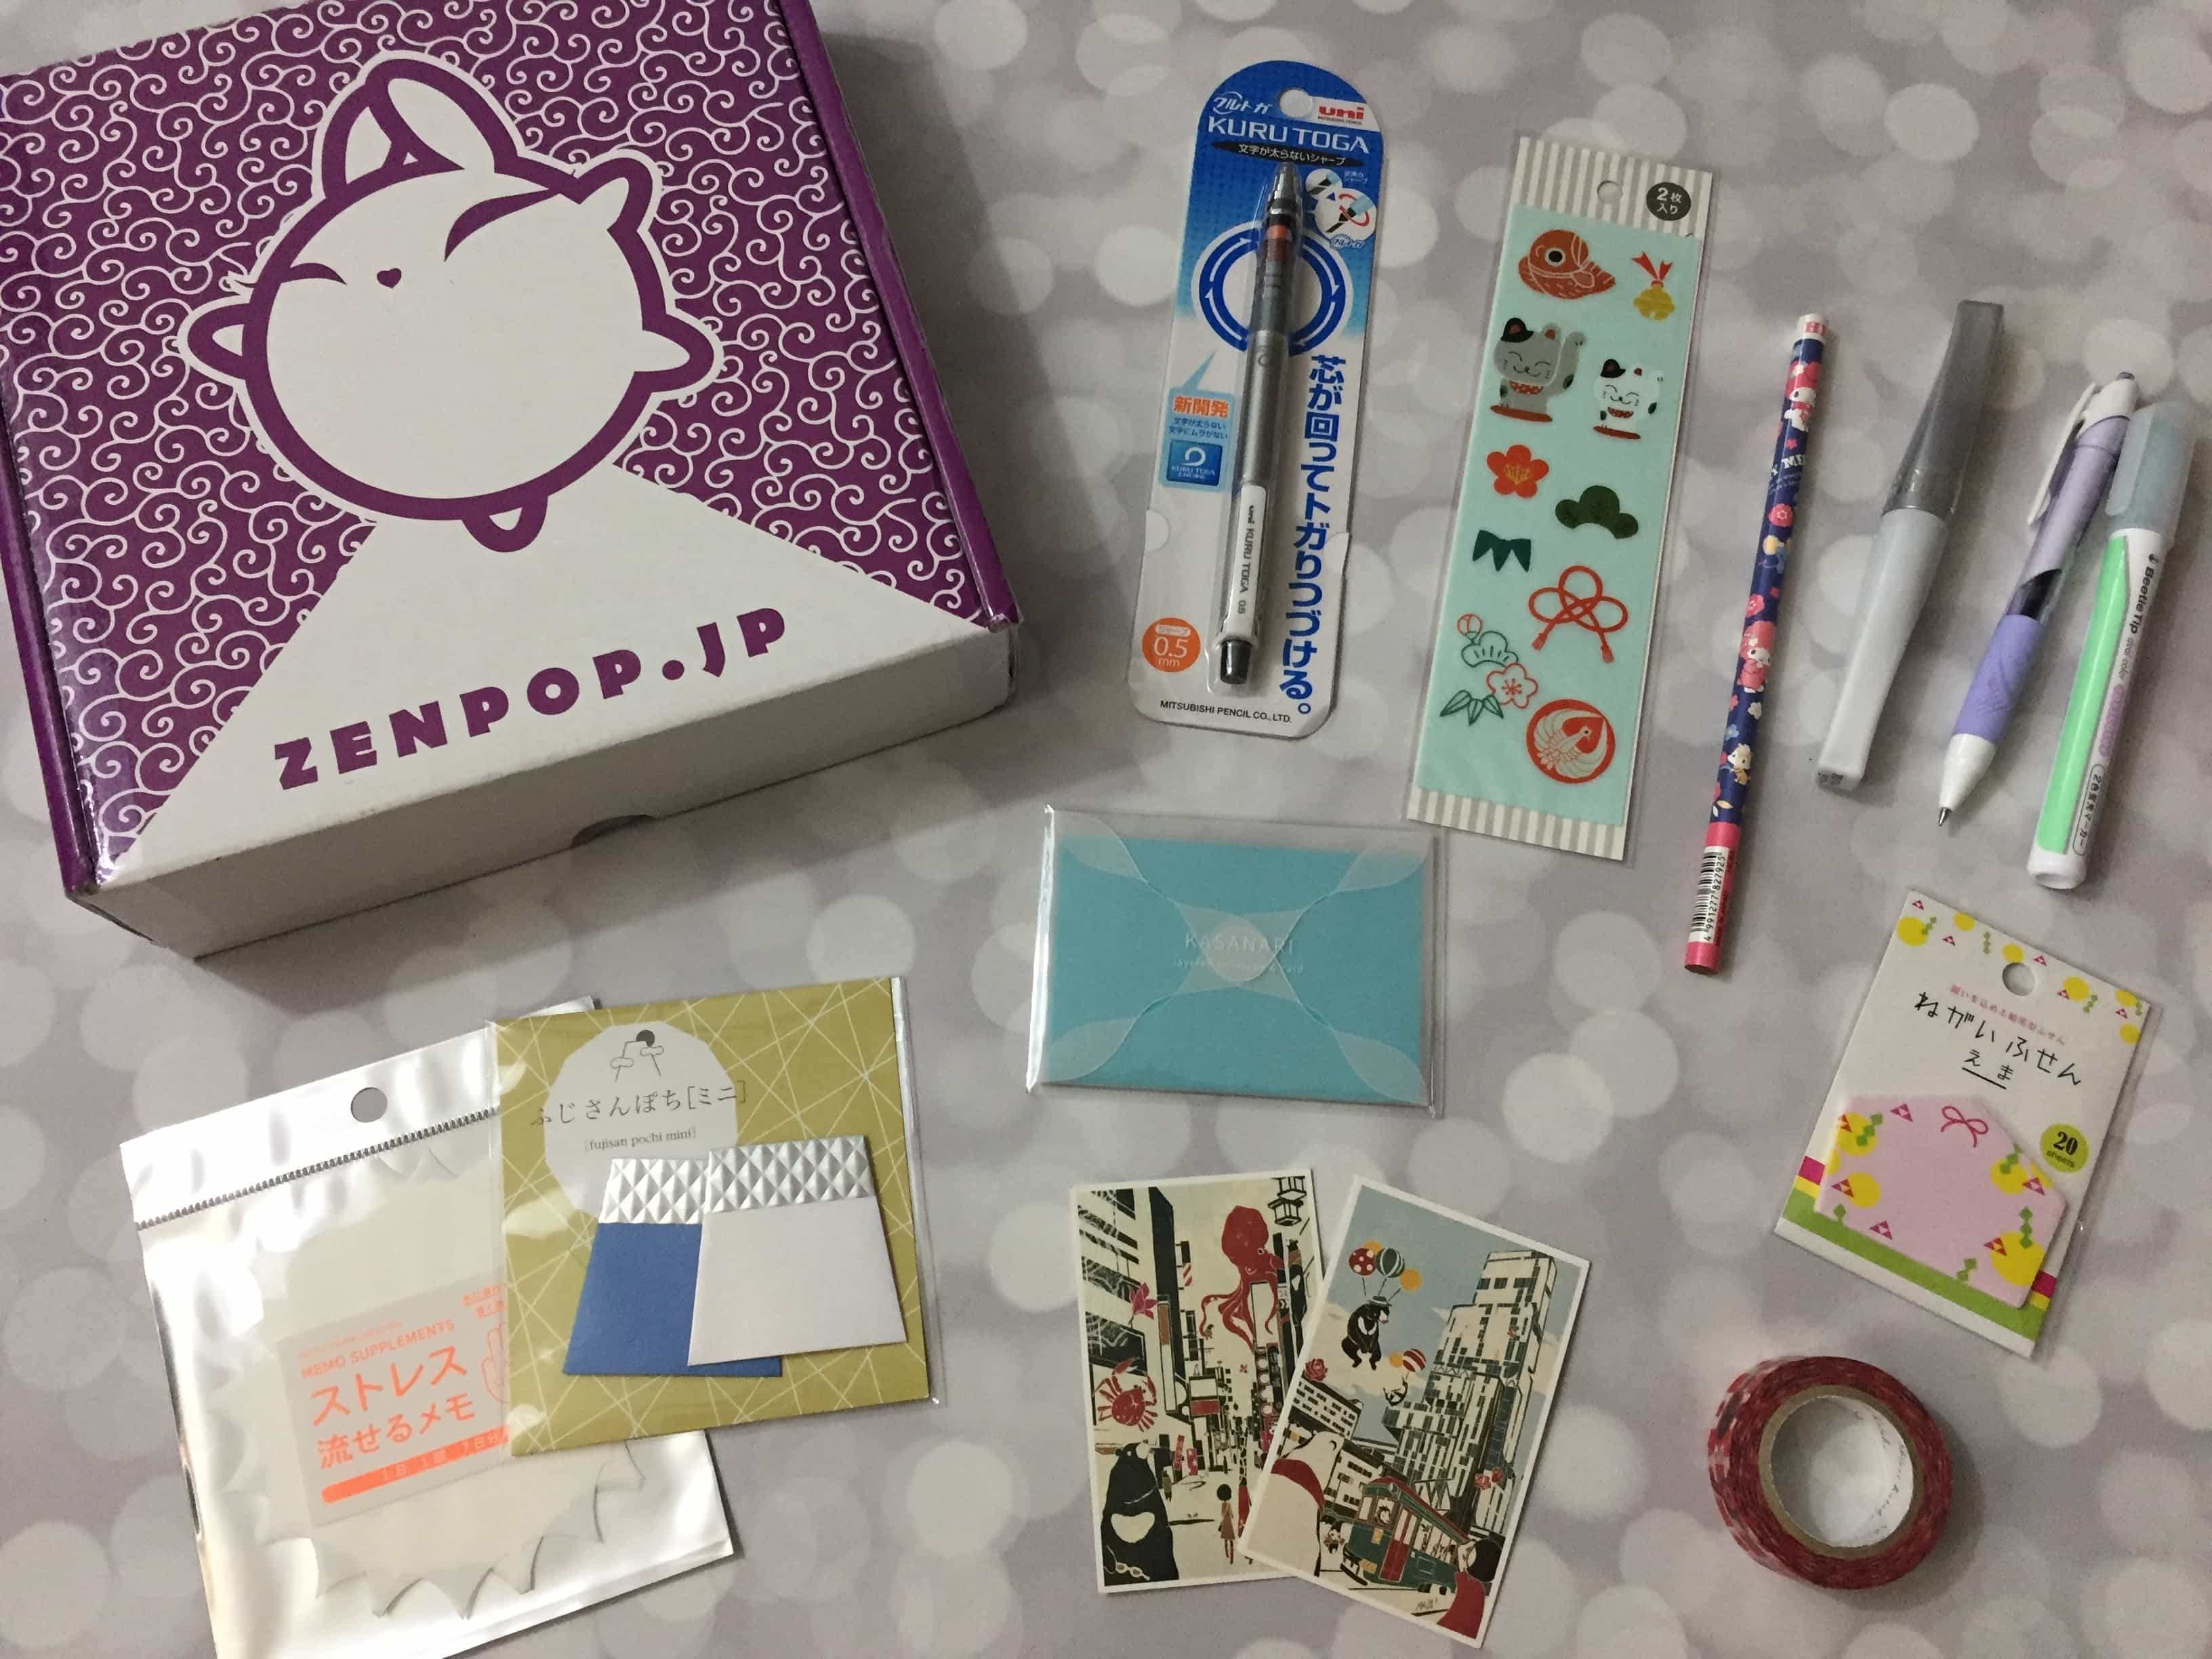 ZenPop Japanese Packs January 2017 Review – Stationery Box